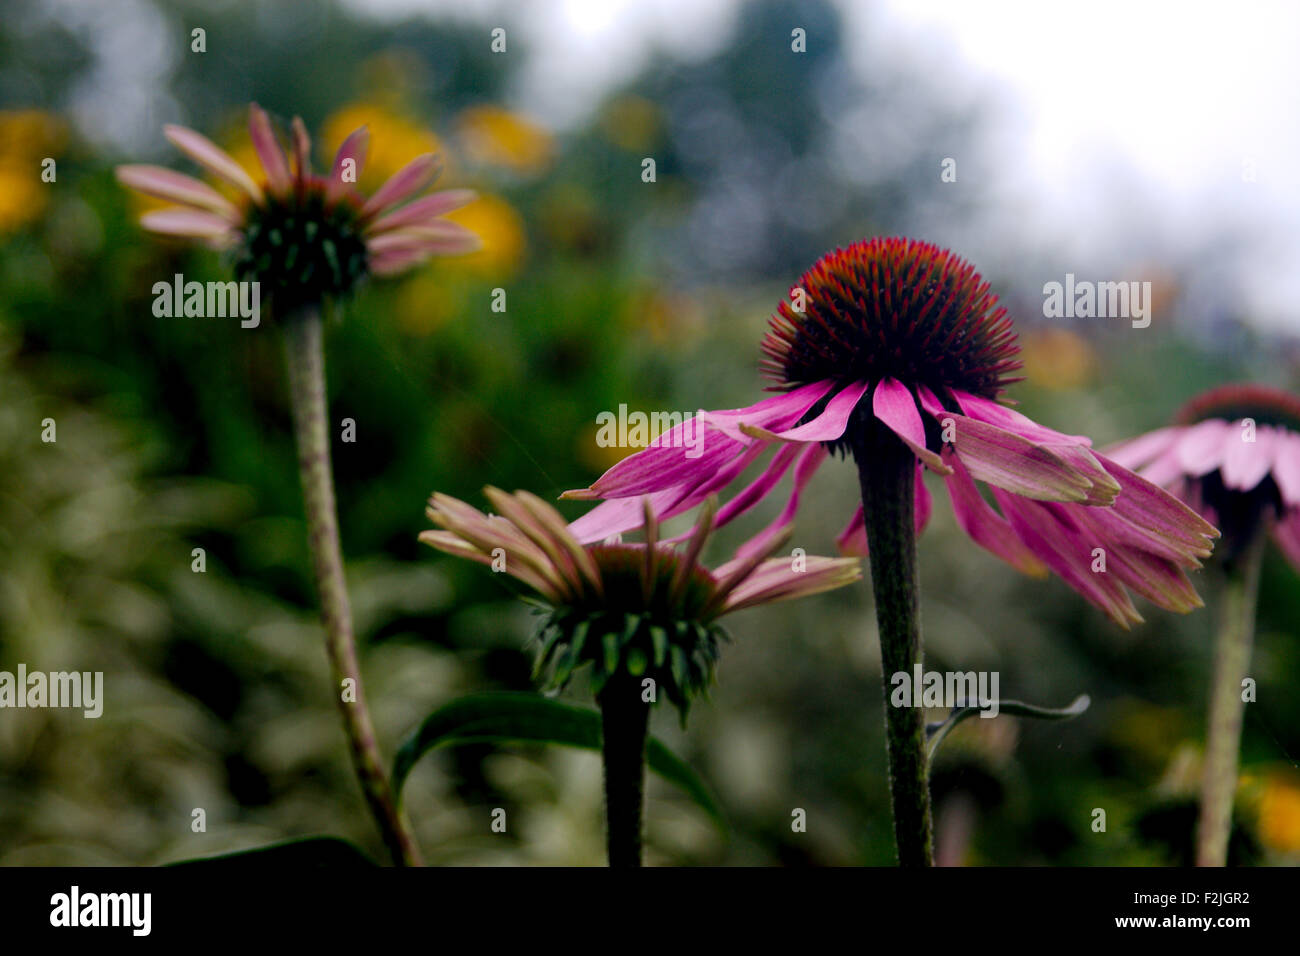 Close-up at eye level of a group of pale purple coneflowers, Echinacea pallida, close-up against a blurred background - Stock Image